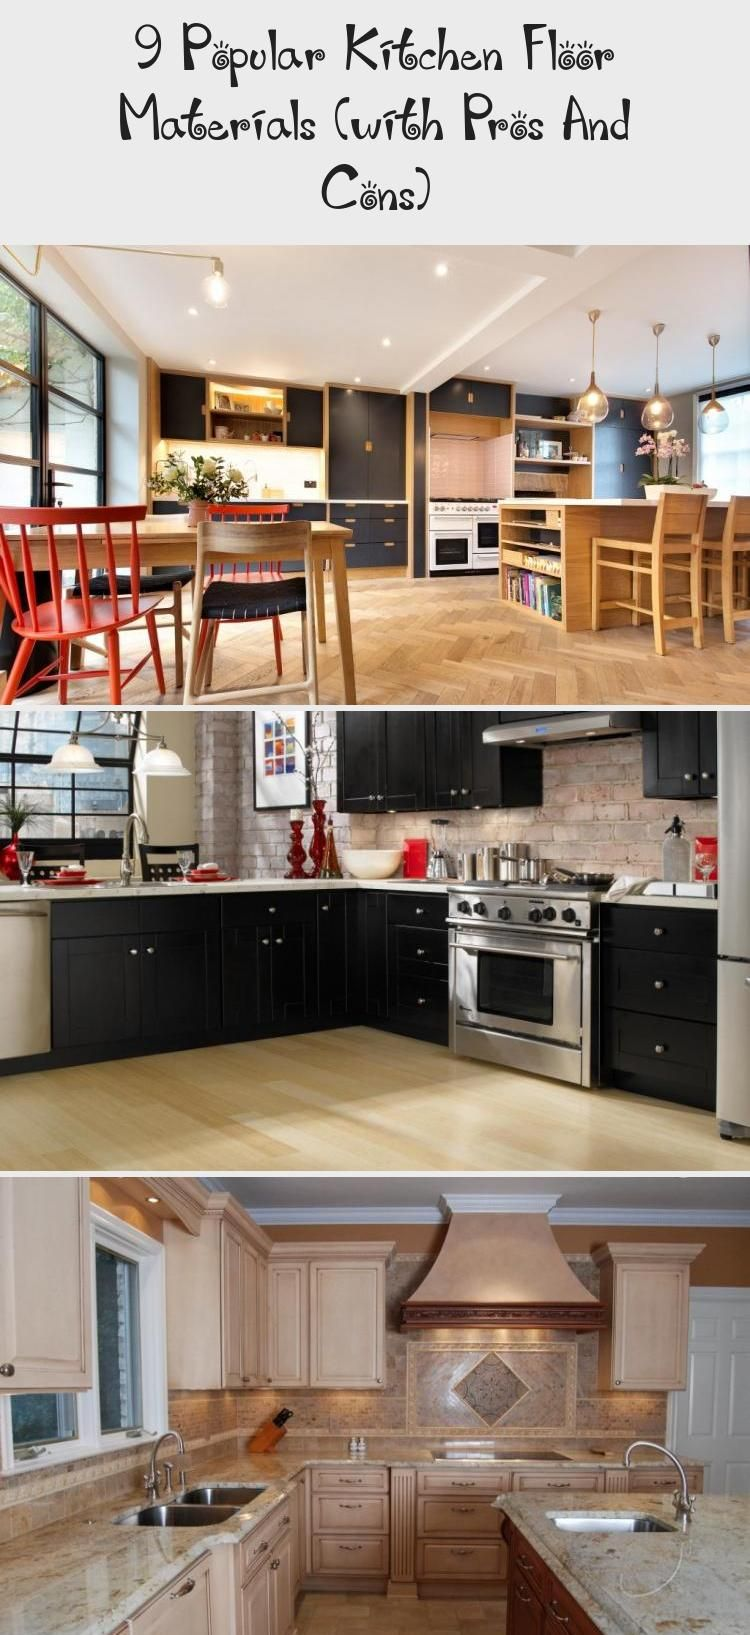 9 Popular Kitchen Floor Materials With Pros And Cons In 2020 Kitchen Flooring Popular Kitchens Flooring